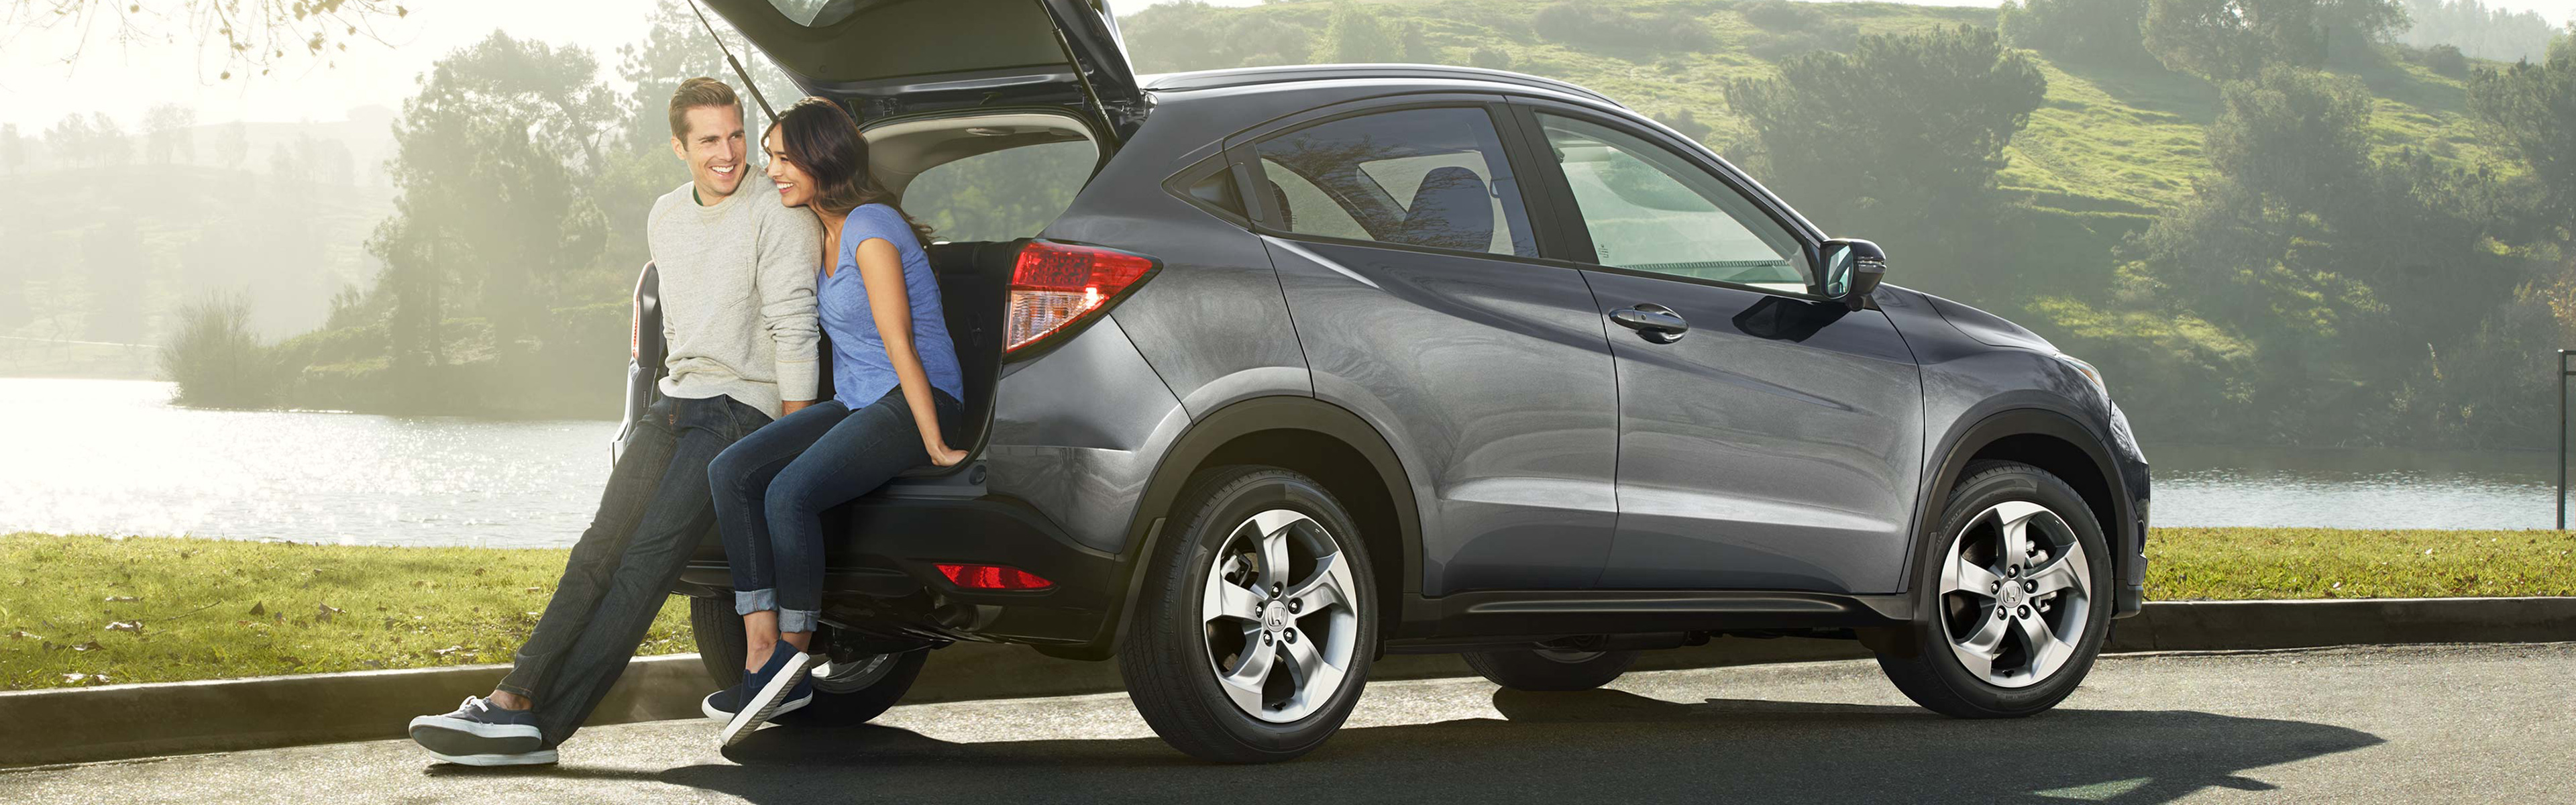 couple sitting in the trunk of a 2019 honda cr-v